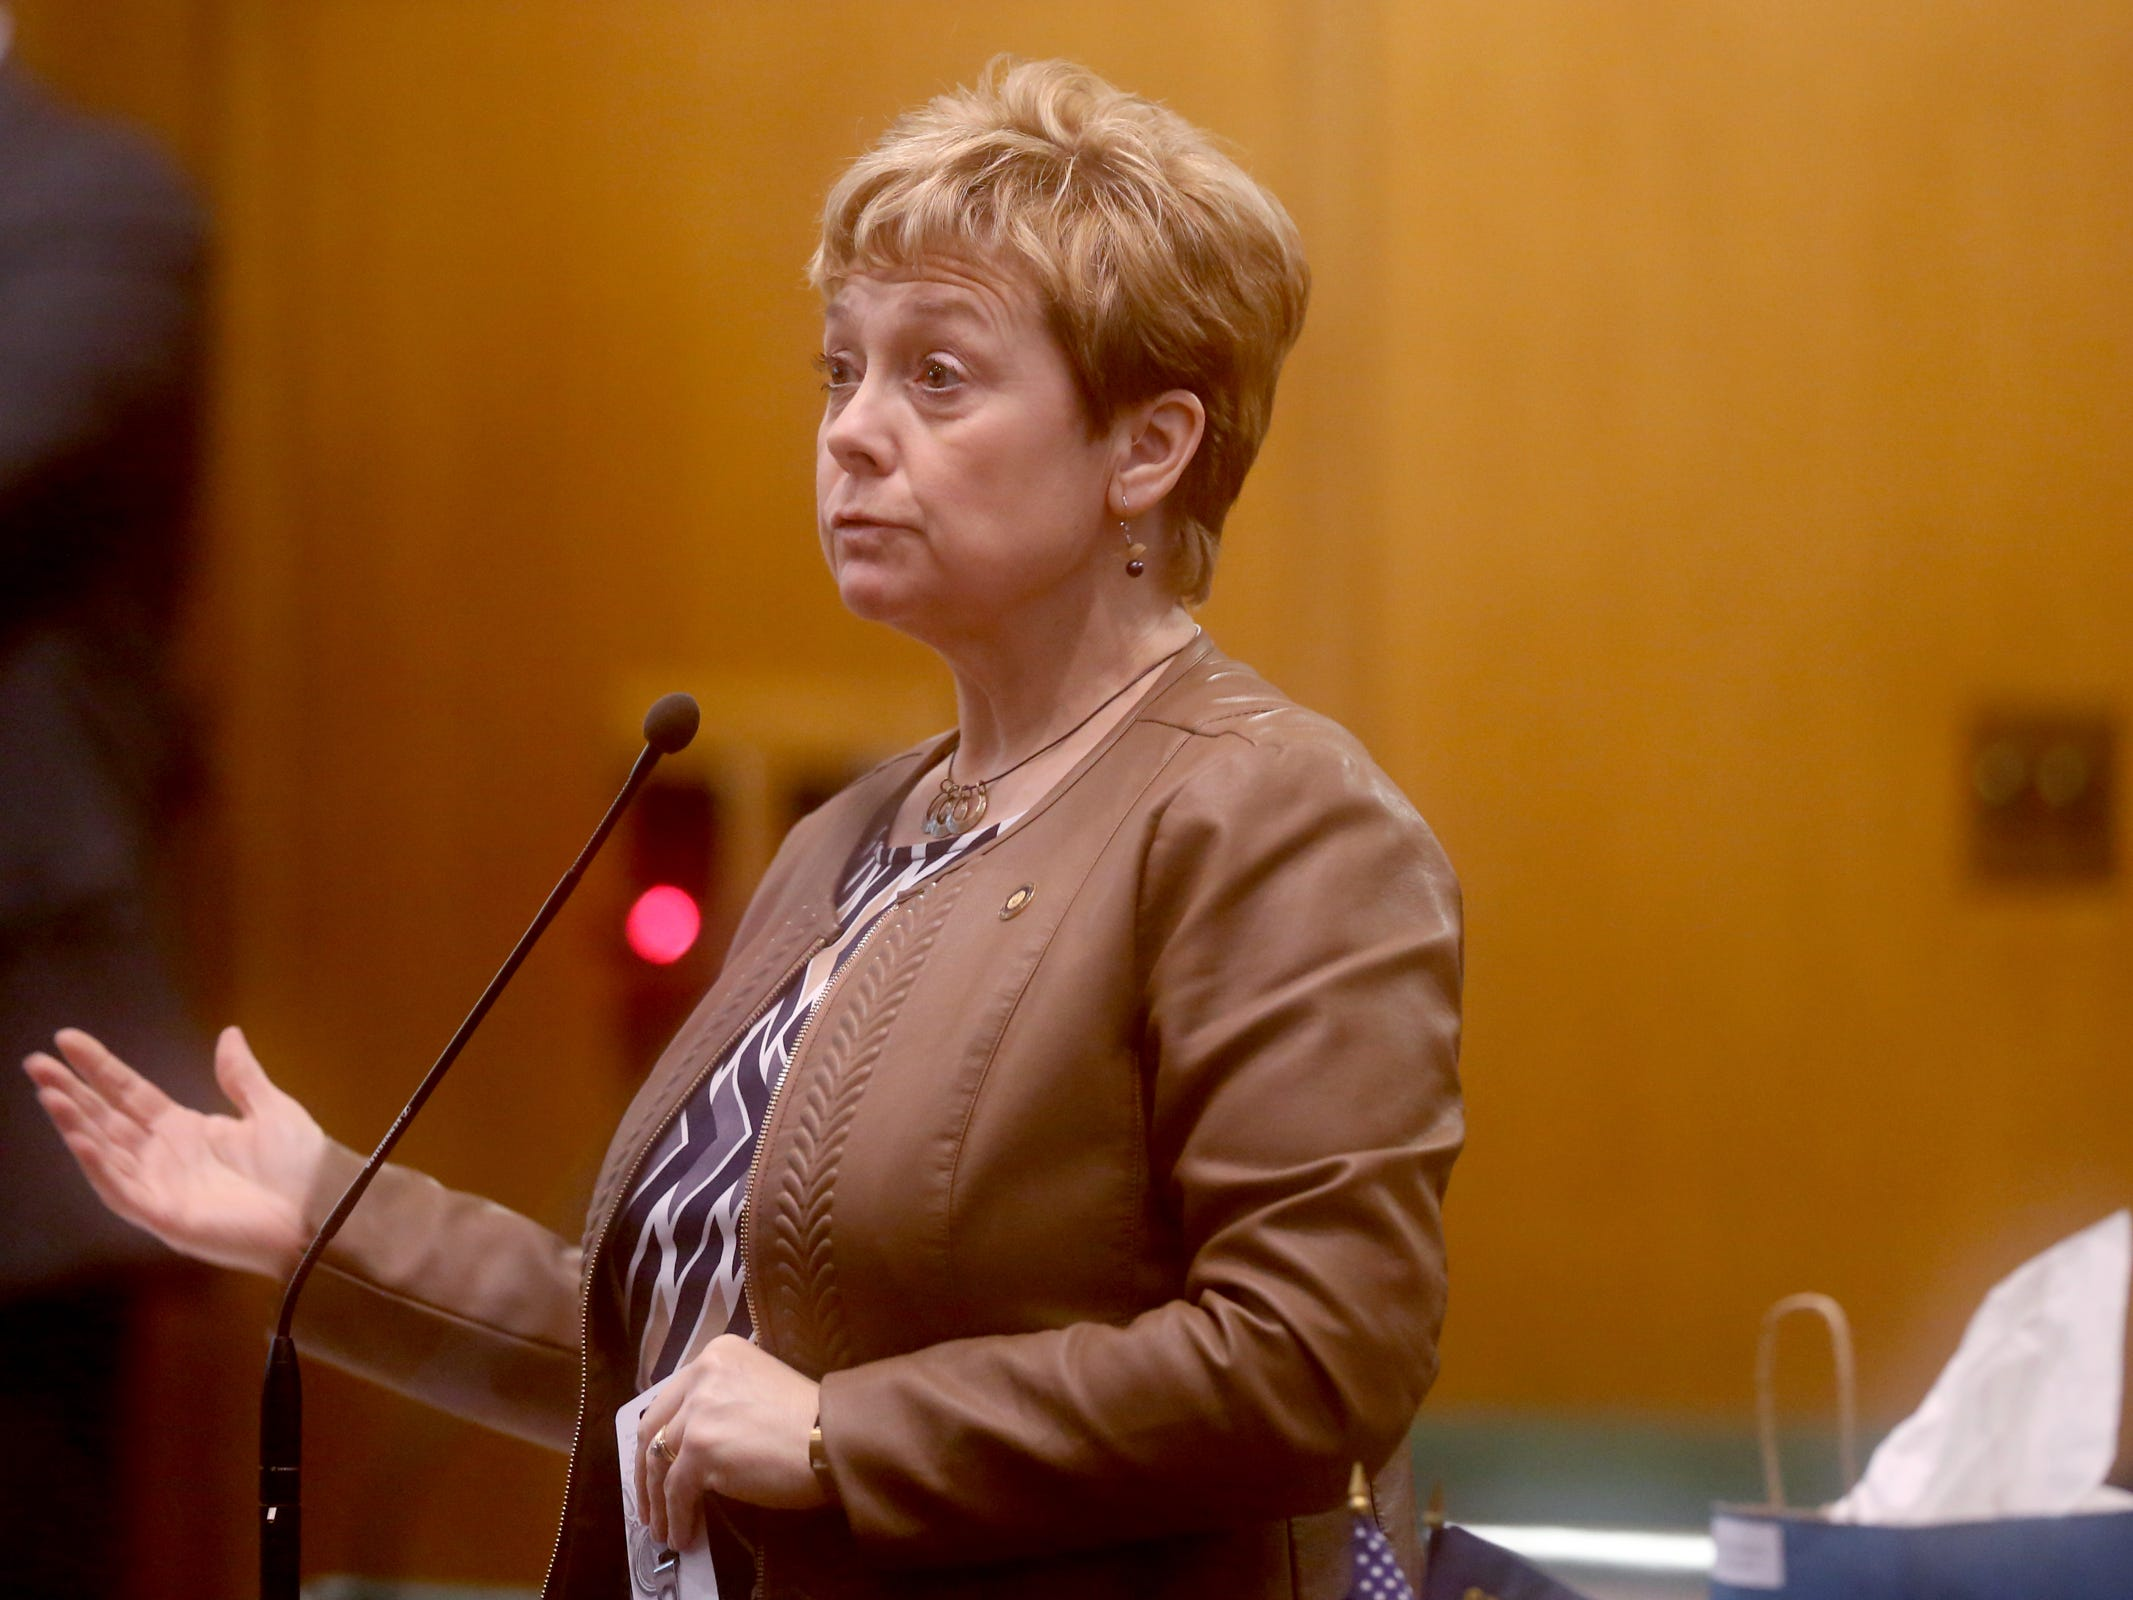 Rep. Sherrie Sprenger, R-Scio, speaks as the House of Representatives convenes at the Oregon State Capitol in Salem on the first day of the 2019 legislative session, Tuesday, Jan. 22, 2019.